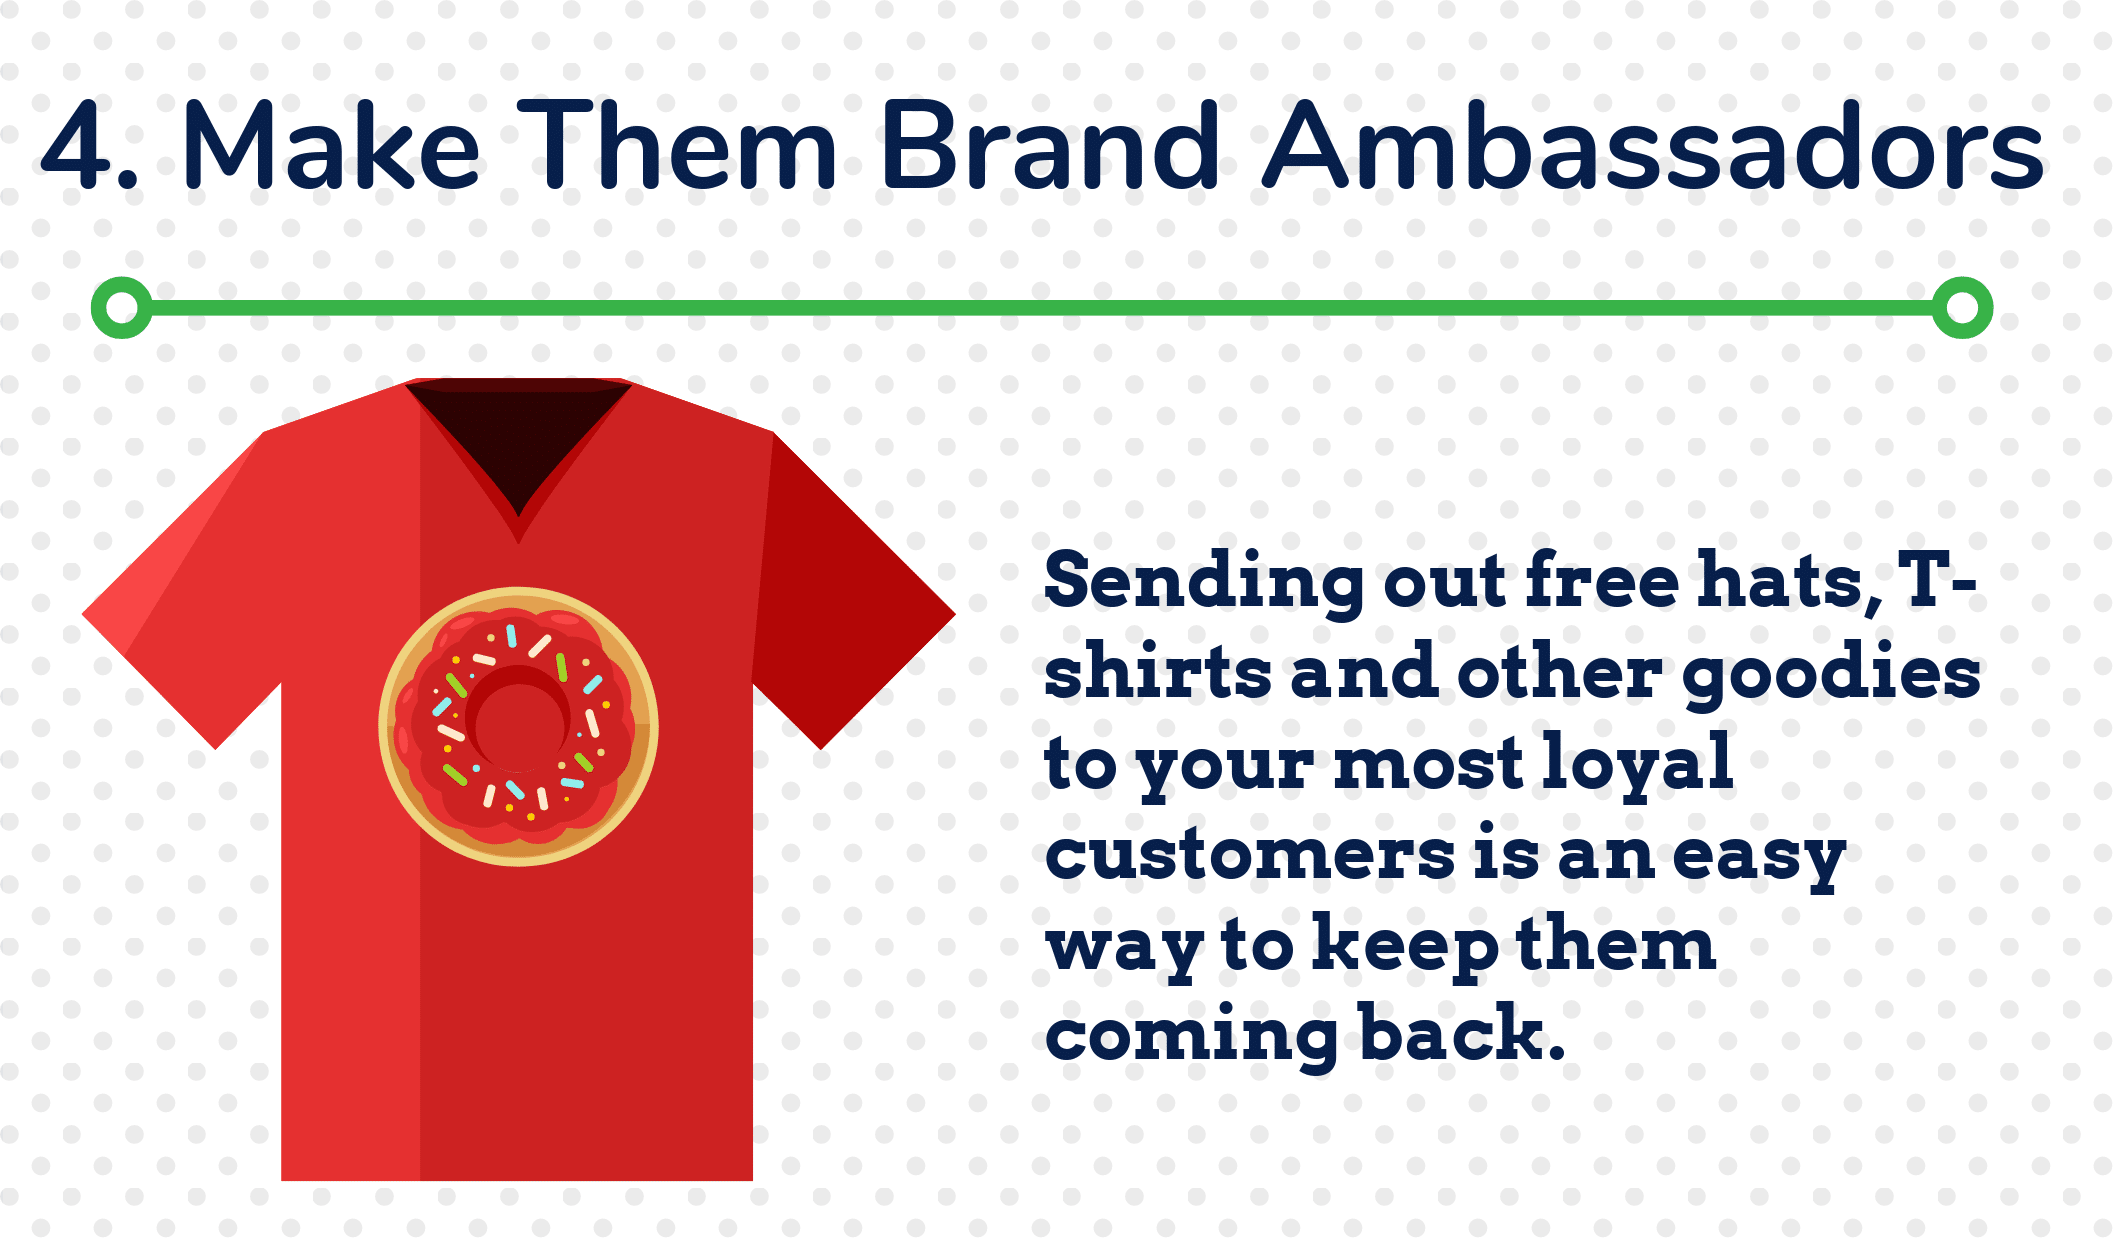 4. Make Them Brand Ambassadors